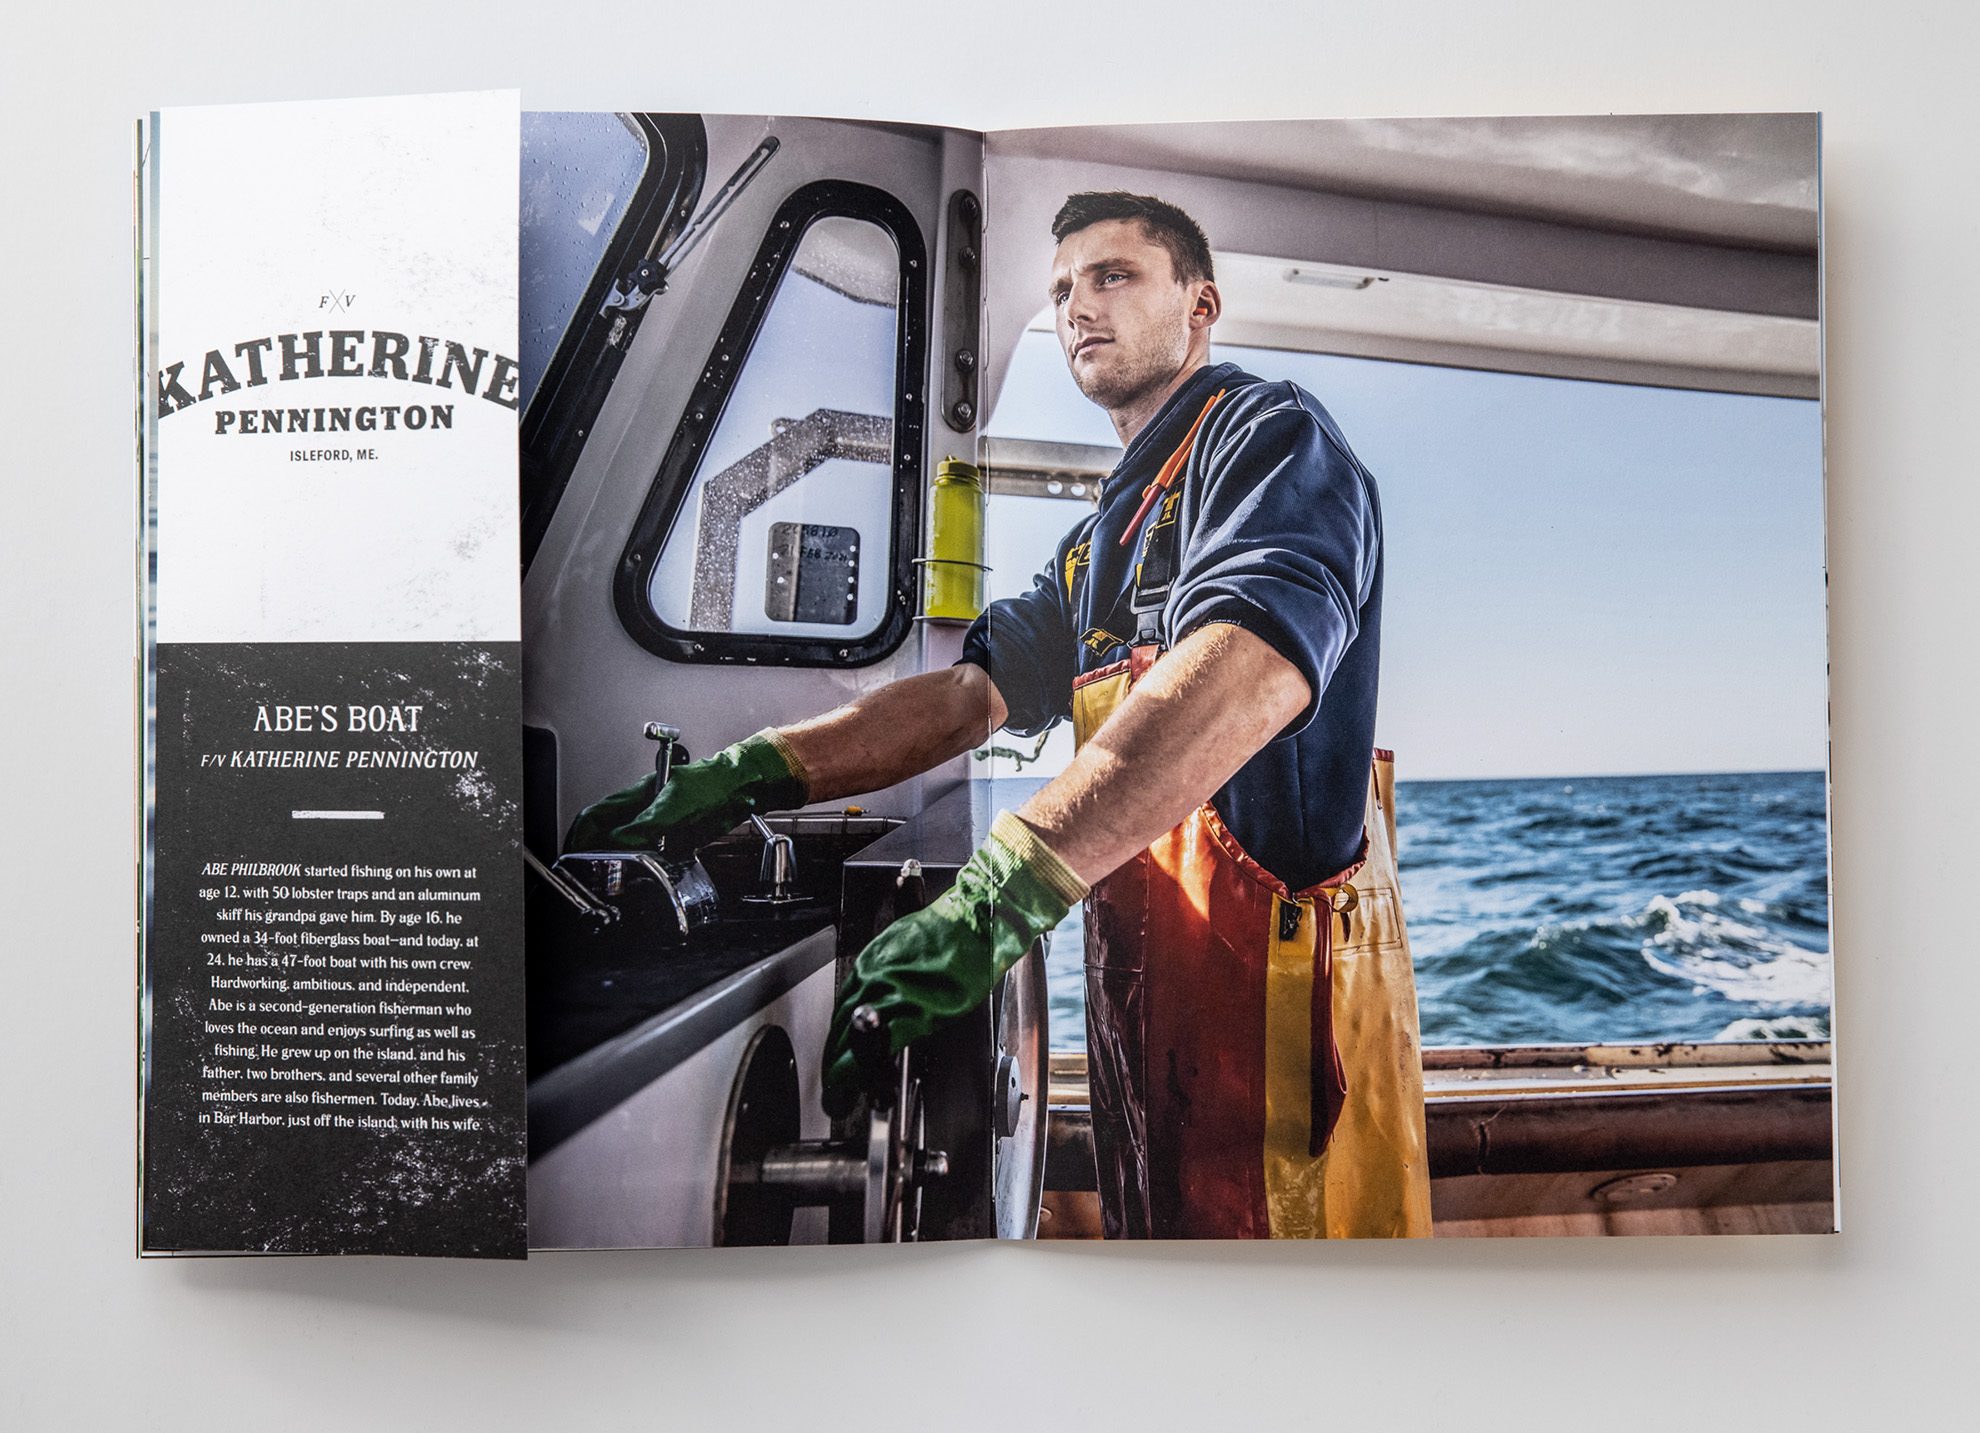 Tadd Myers promo booklet of the Lobstermen of Little Cranberry Island featuring Abes boat with him at the wheel